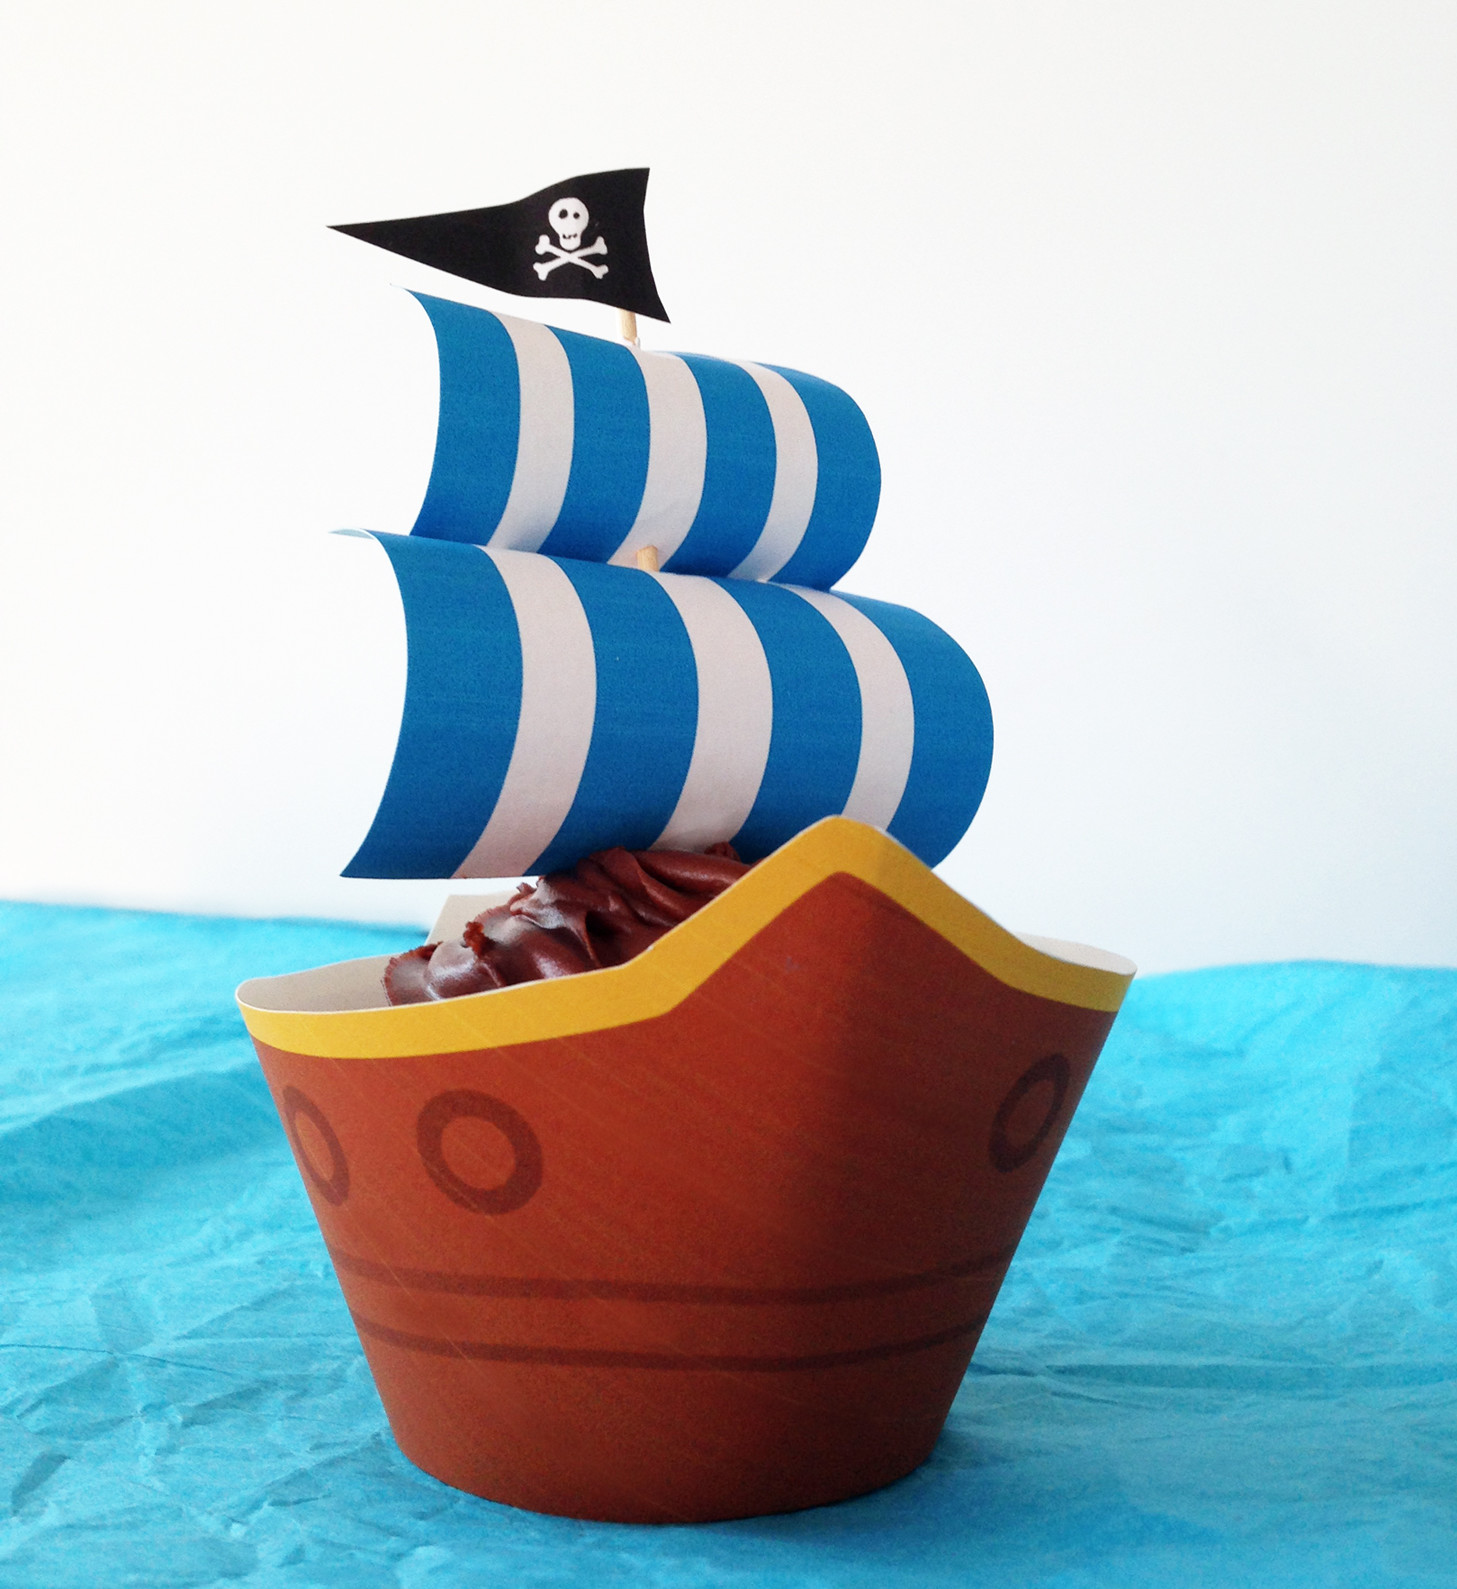 Swell Pirate Ship Party Cupcakes With Free Printables Funny Birthday Cards Online Elaedamsfinfo